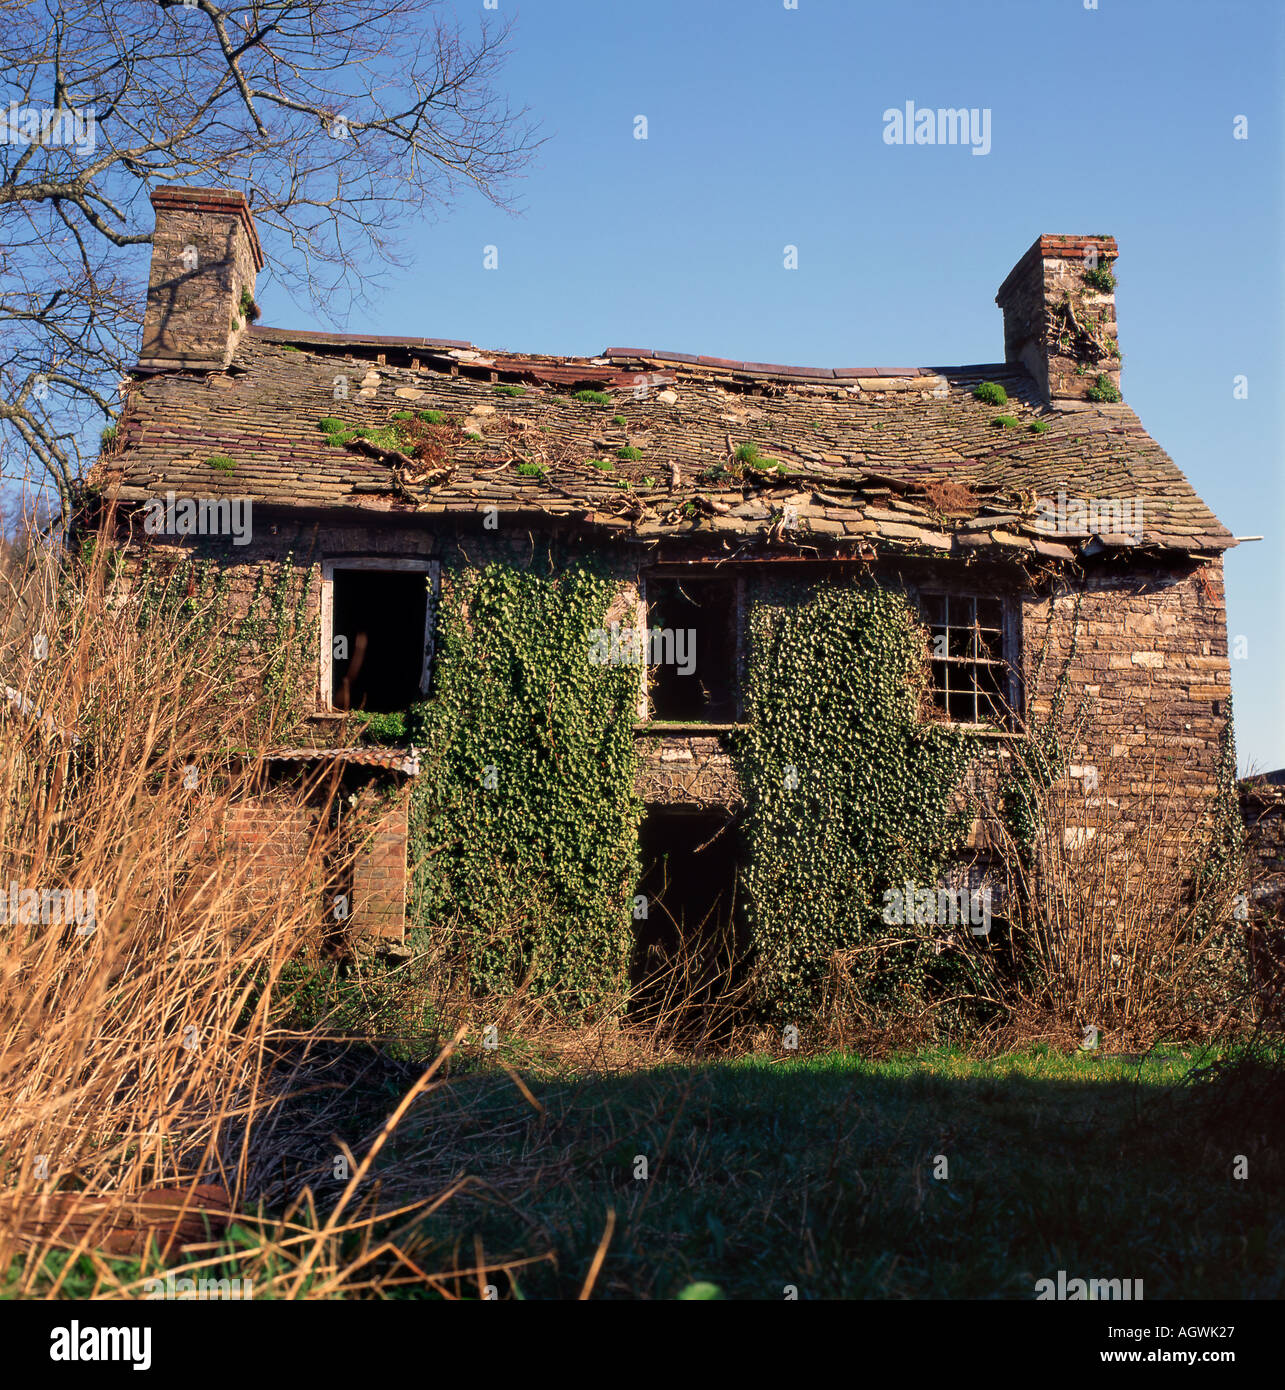 Derelict abandoned old stone house cottage with loose roof tiles Wales, UK KATHY DEWITT Stock Photo